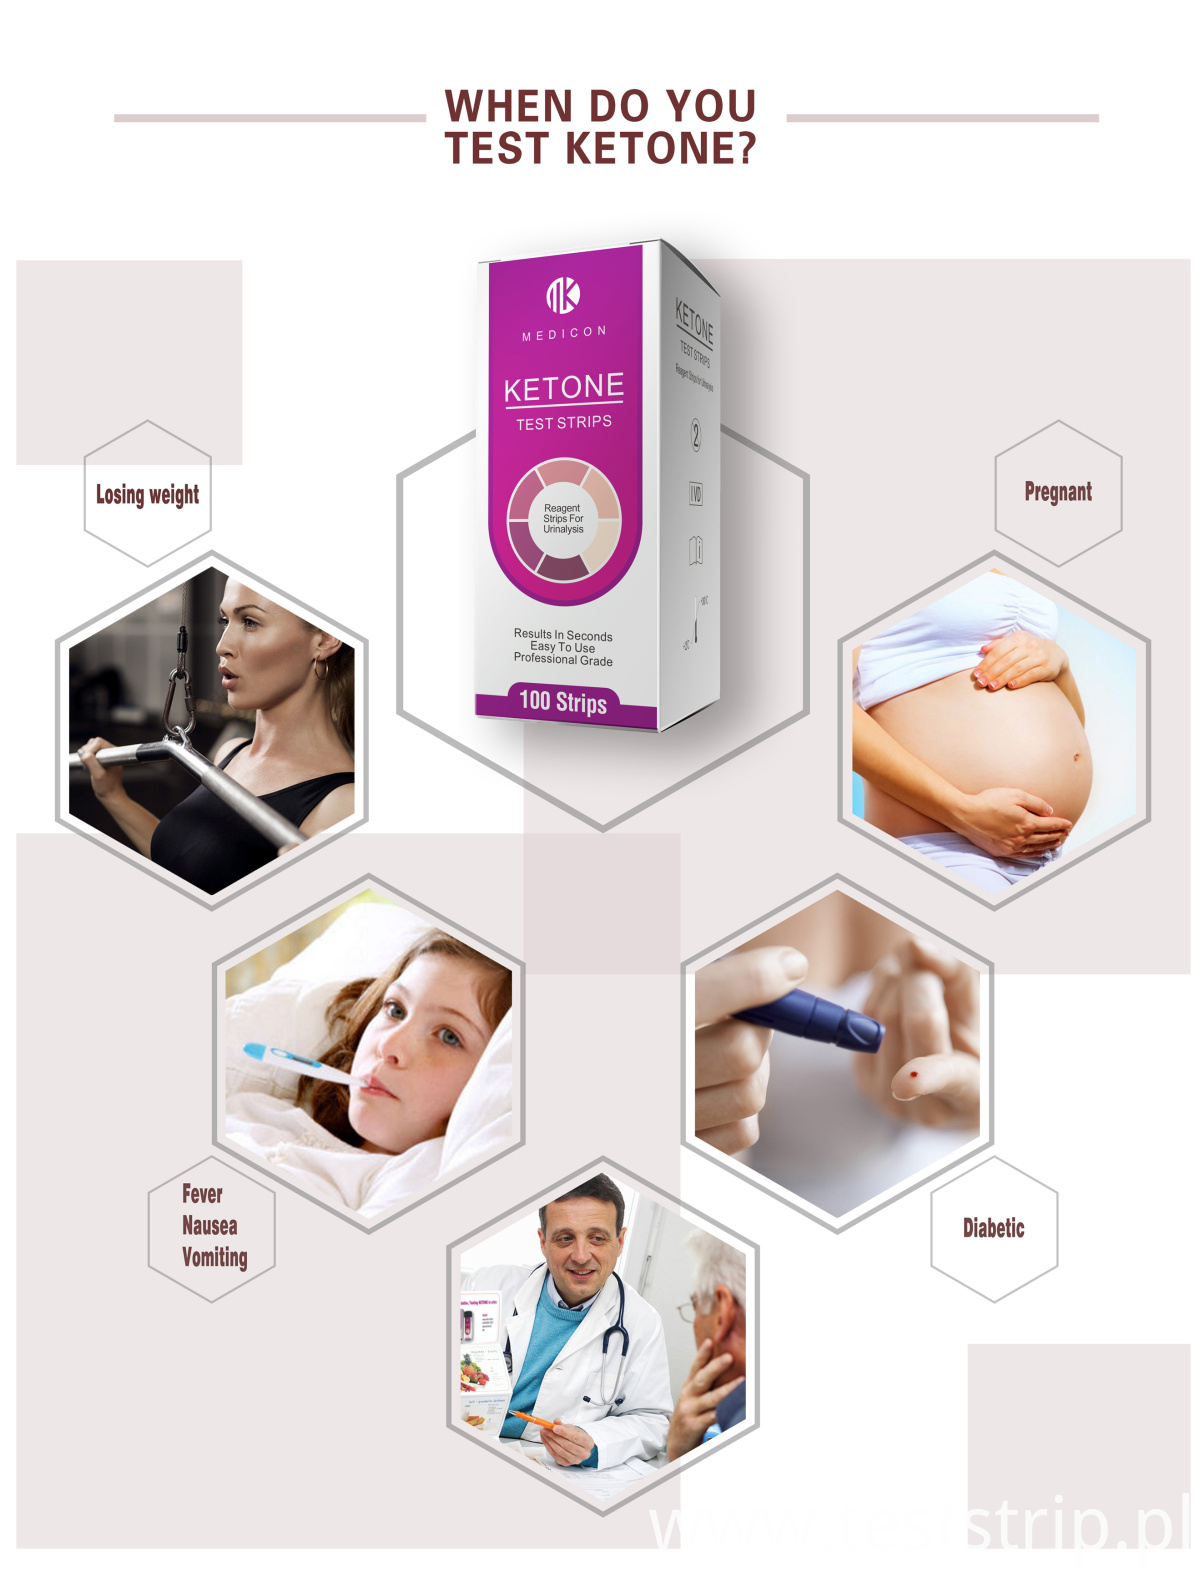 Ketone urine test strips